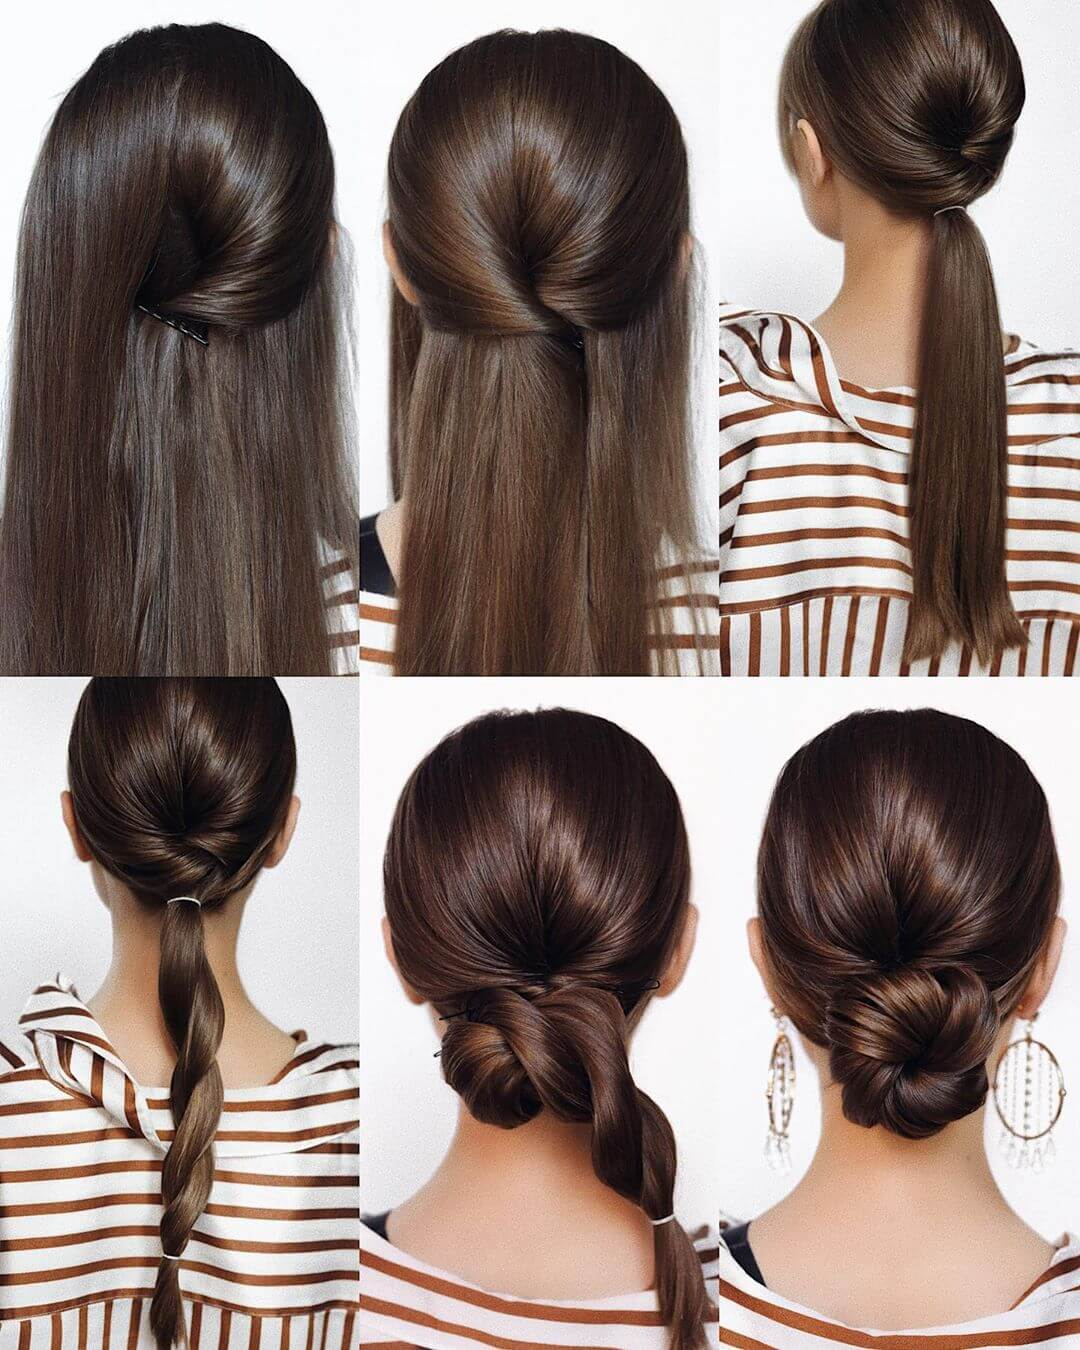 Step by Step Lower role bun Hairstyles for Long, Medium, Short Hair